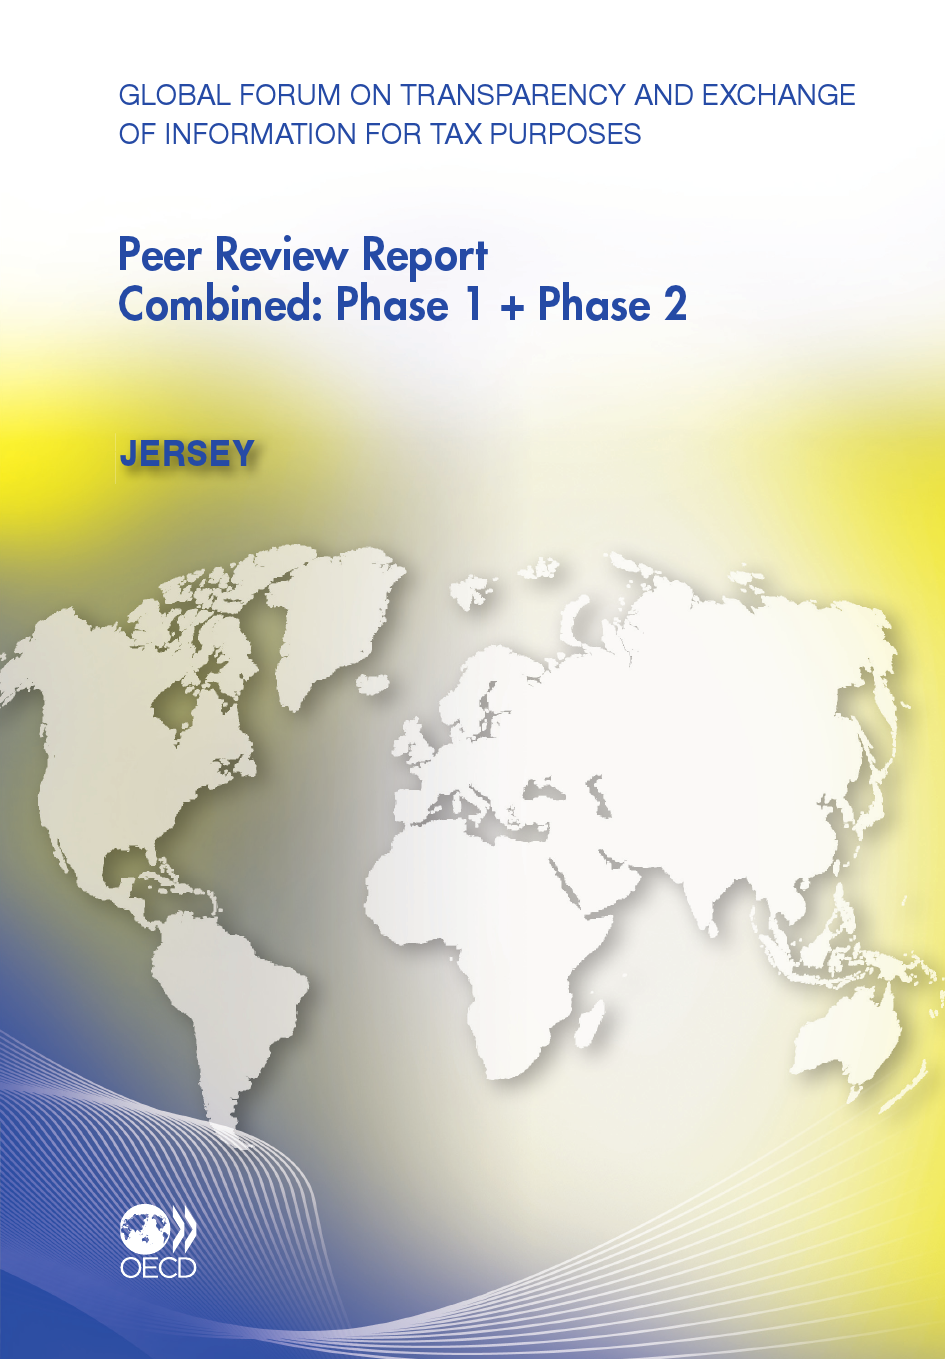 Global Forum on Transparency and Exchange of Information for Tax Purposes Peer Reviews:  Jersey 2011